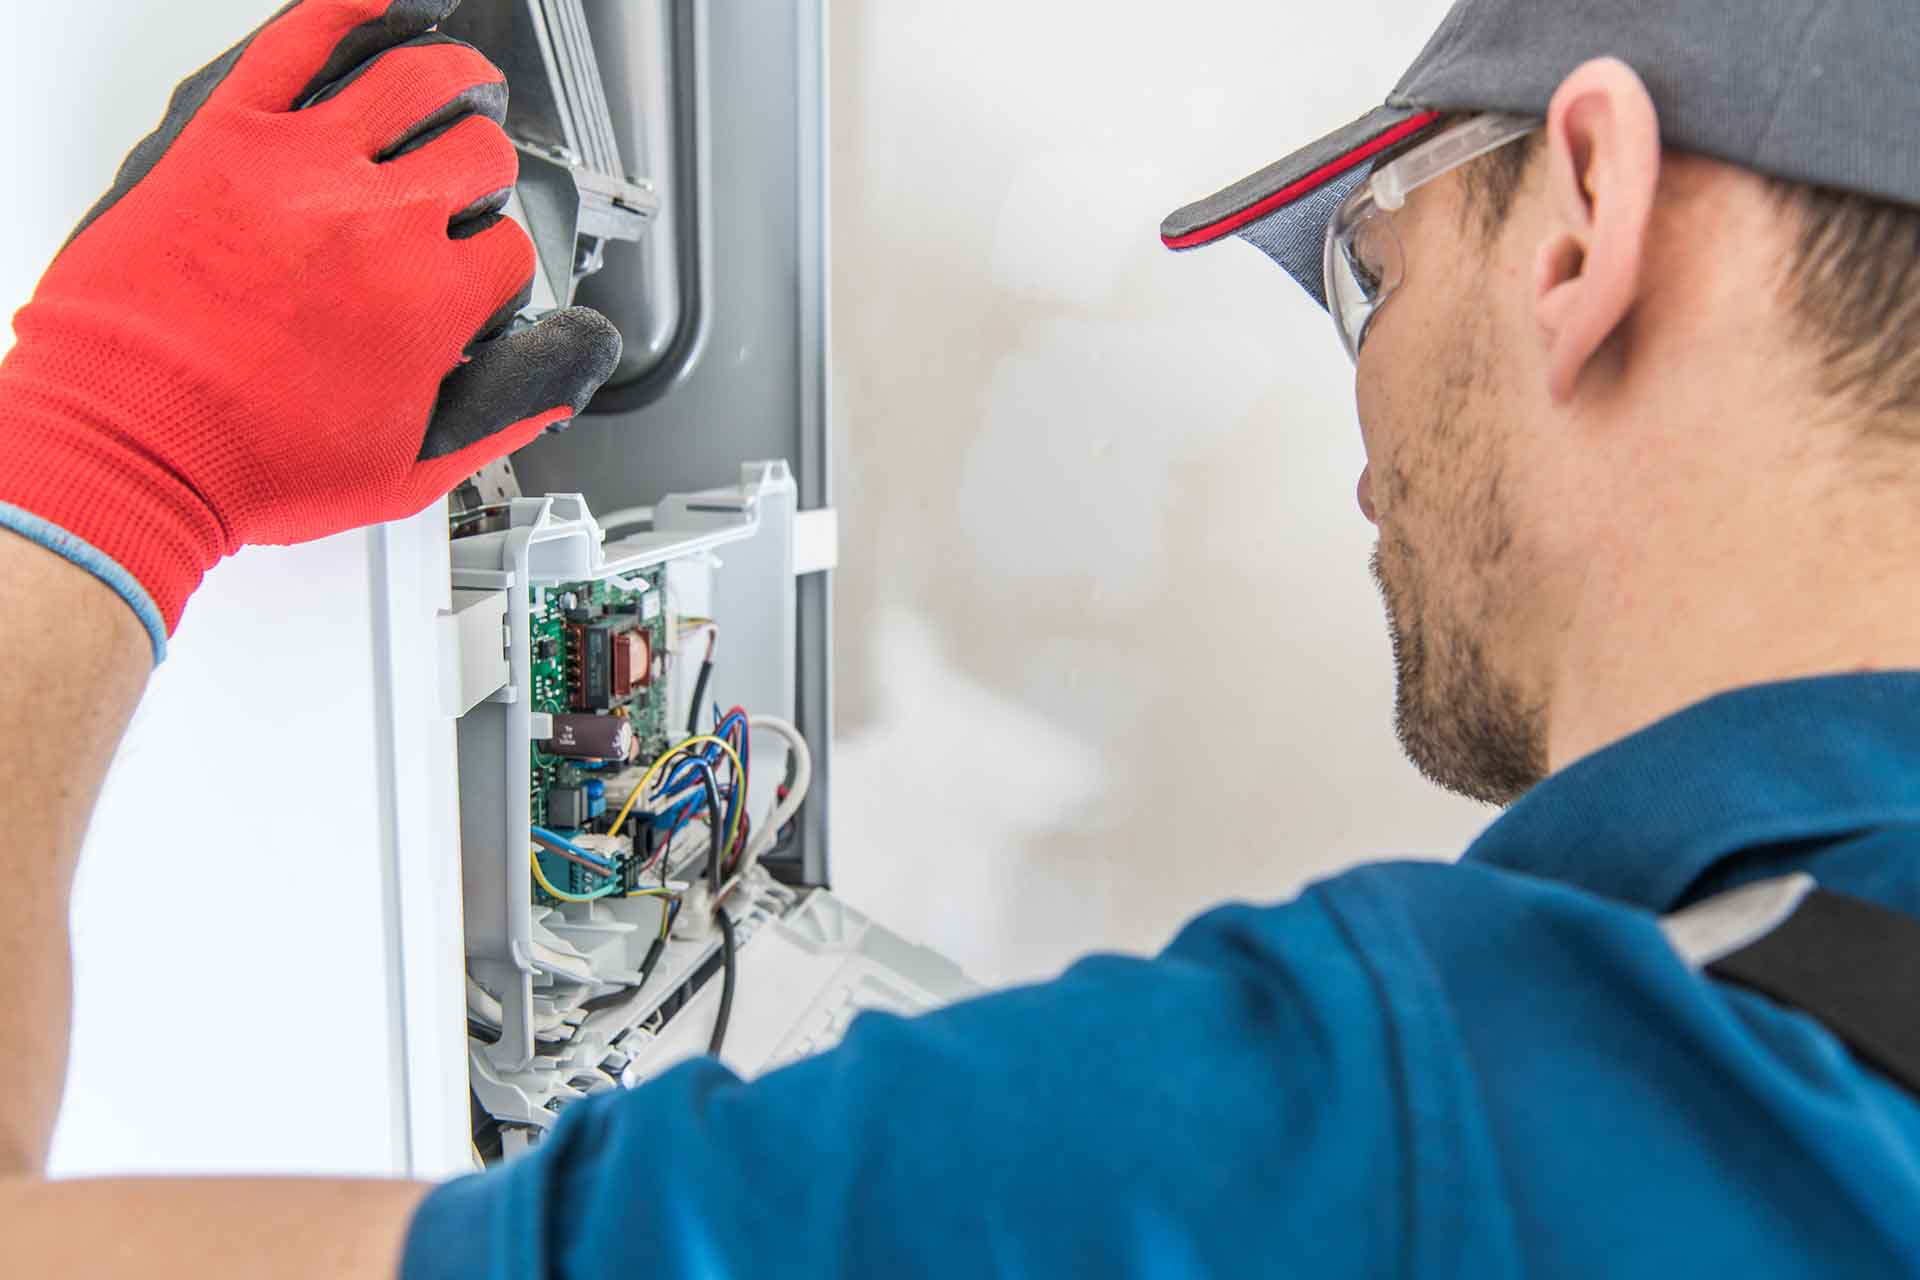 What Do You Do When Your Furnace Won't Turn On?